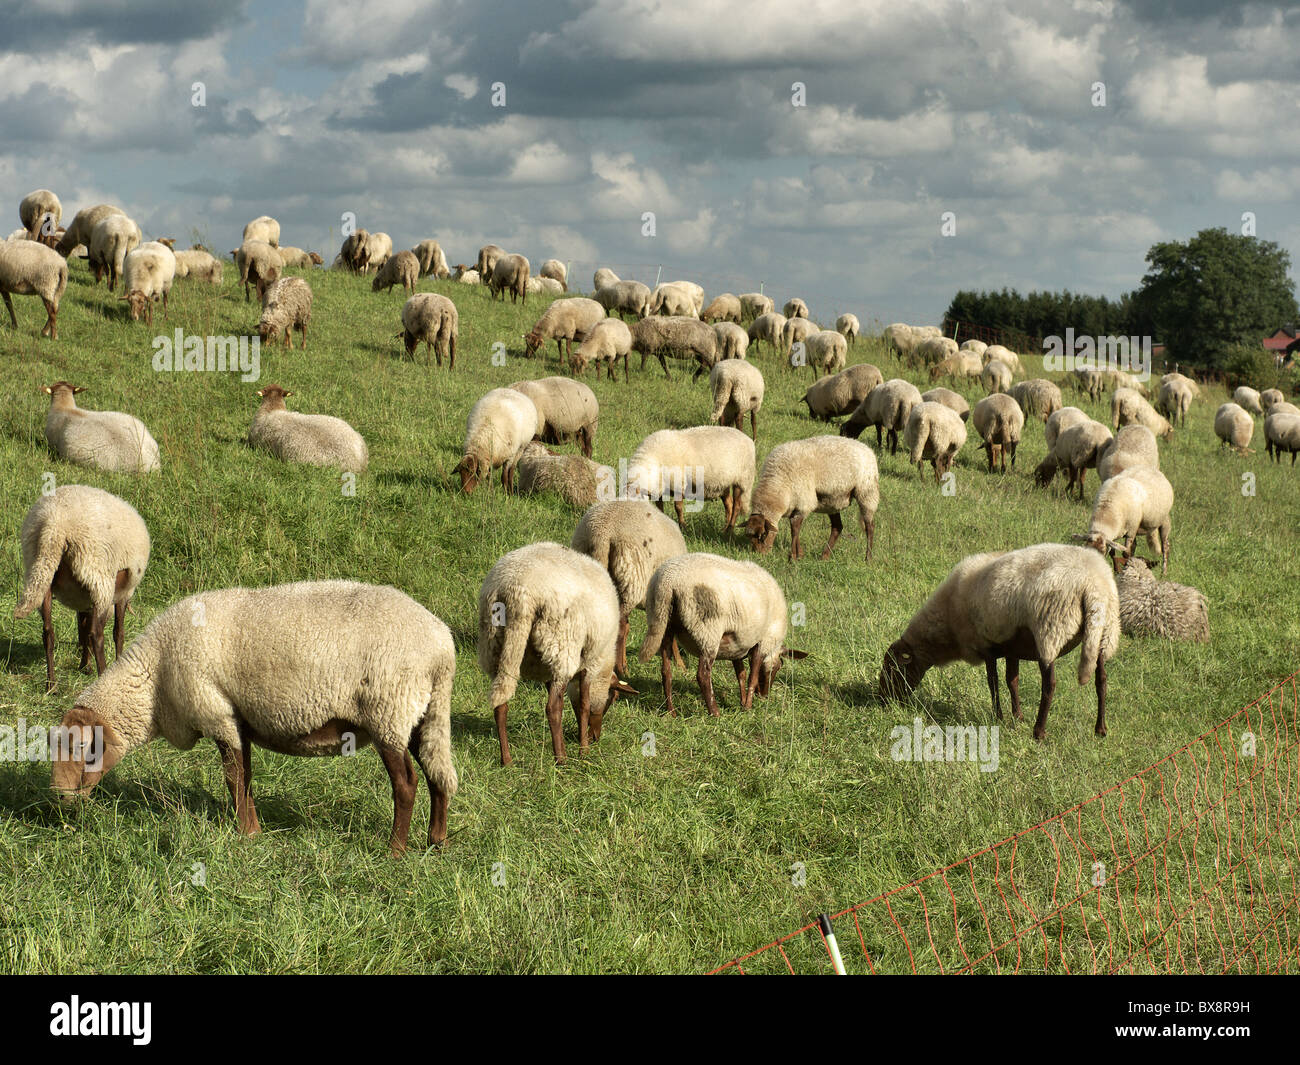 Flock of sheep grazing on a dike of the river Elbe near Tespe, Elbmarsch, Niedersachsen, Germany. - Stock Image